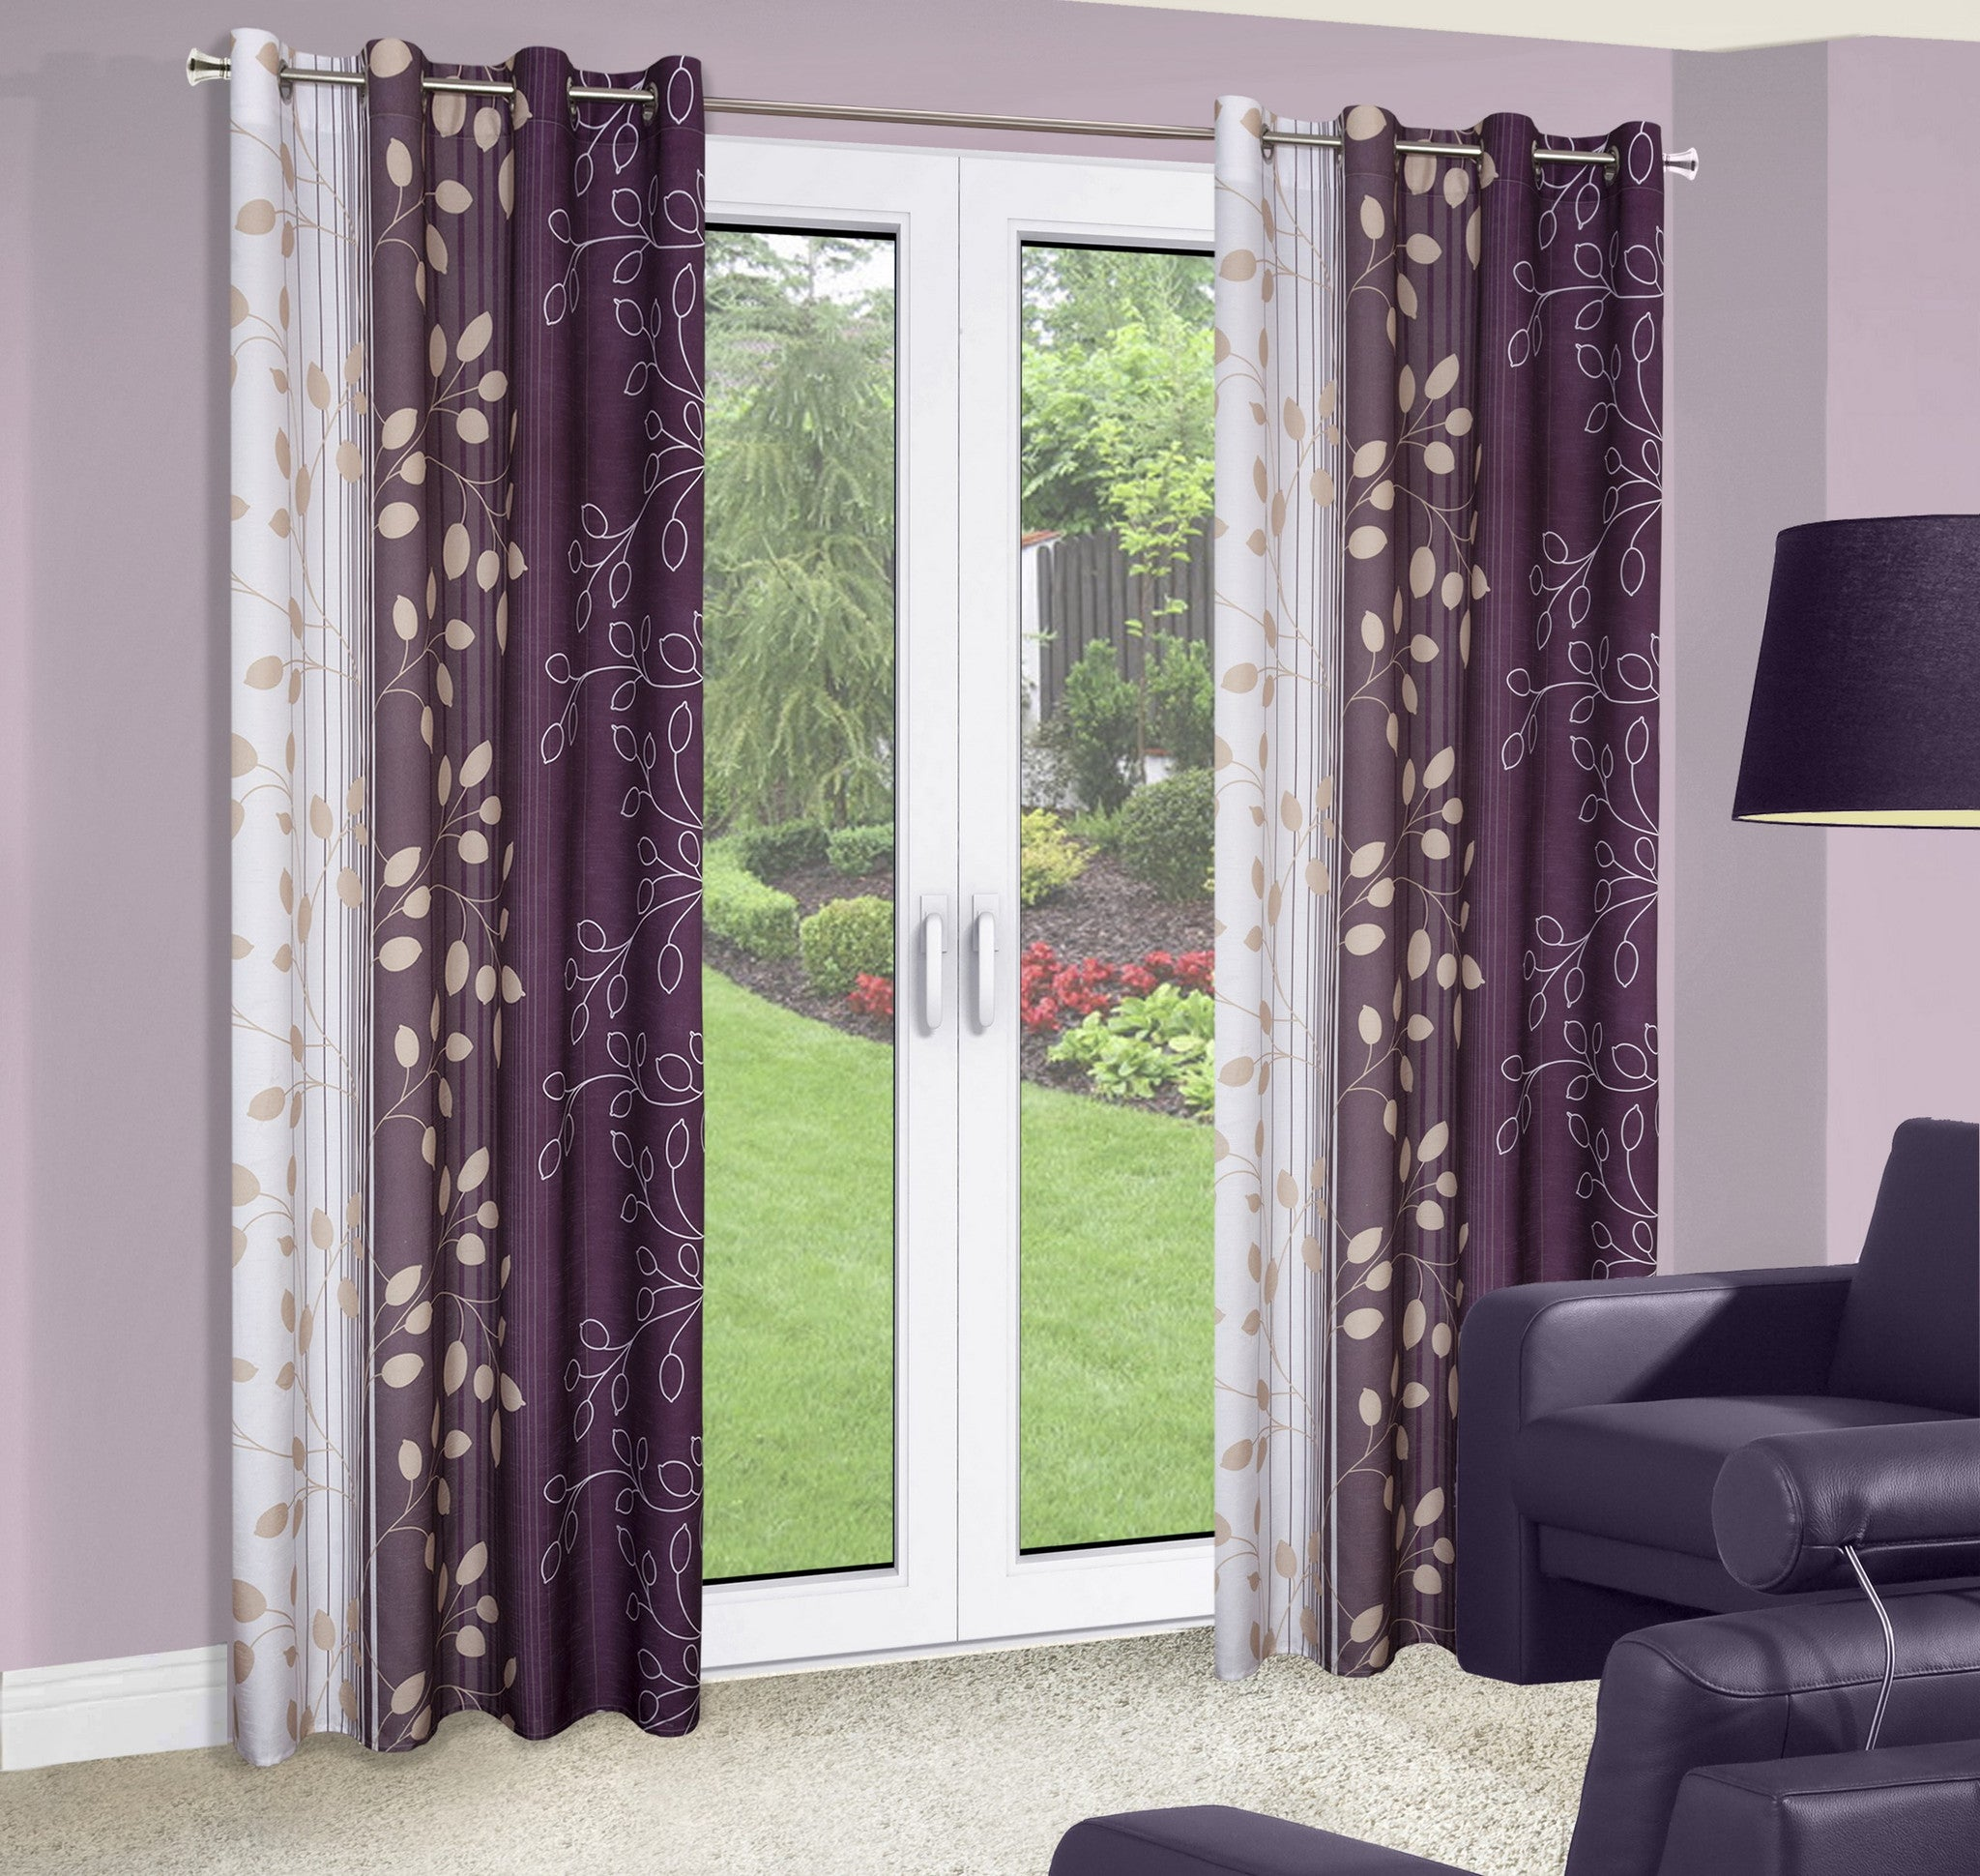 embroidered from garden rustic modern butterfly in tulle drop home window finished curtain screening room curtains living red drapes product for item purple fabric